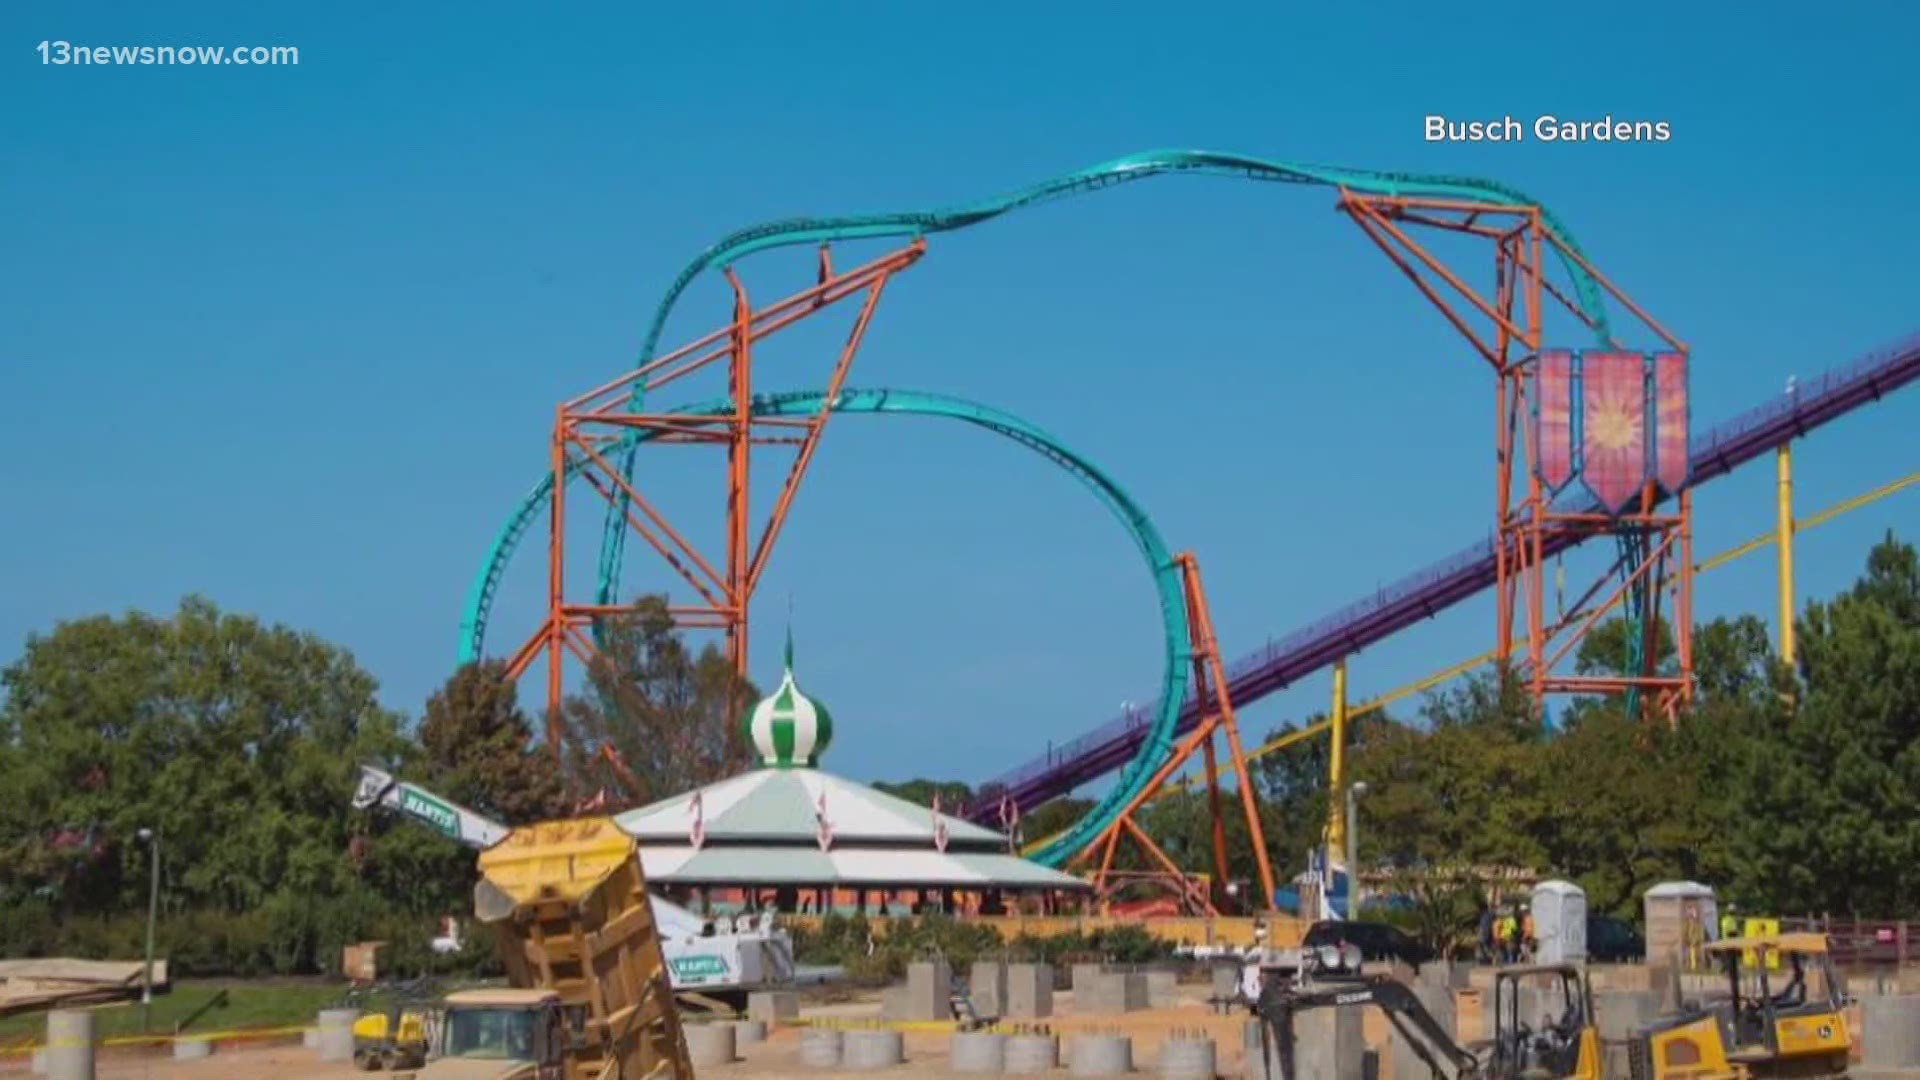 Busch Gardens Williamsburg Remains Closed During Phase 3 13newsnow Com